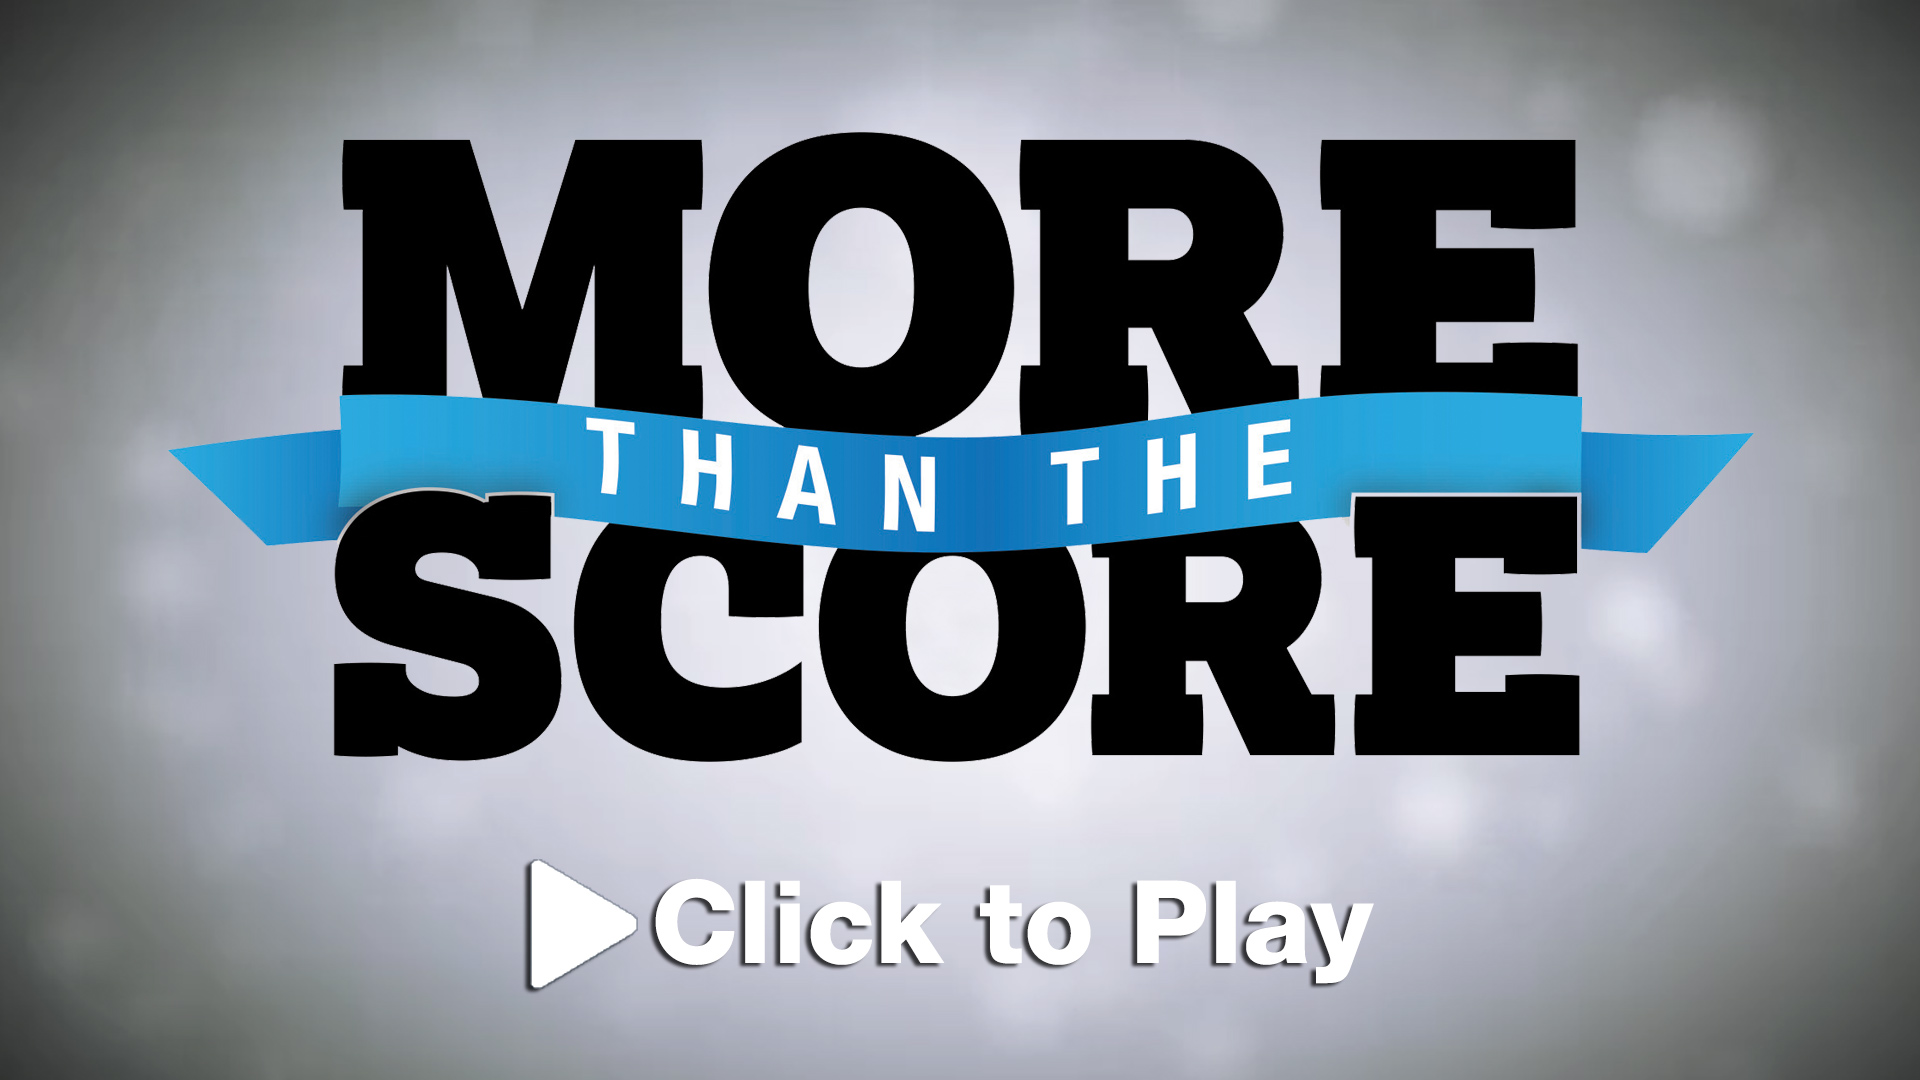 Watch this week's More than the Score on http://www.morethanthescore.tv!